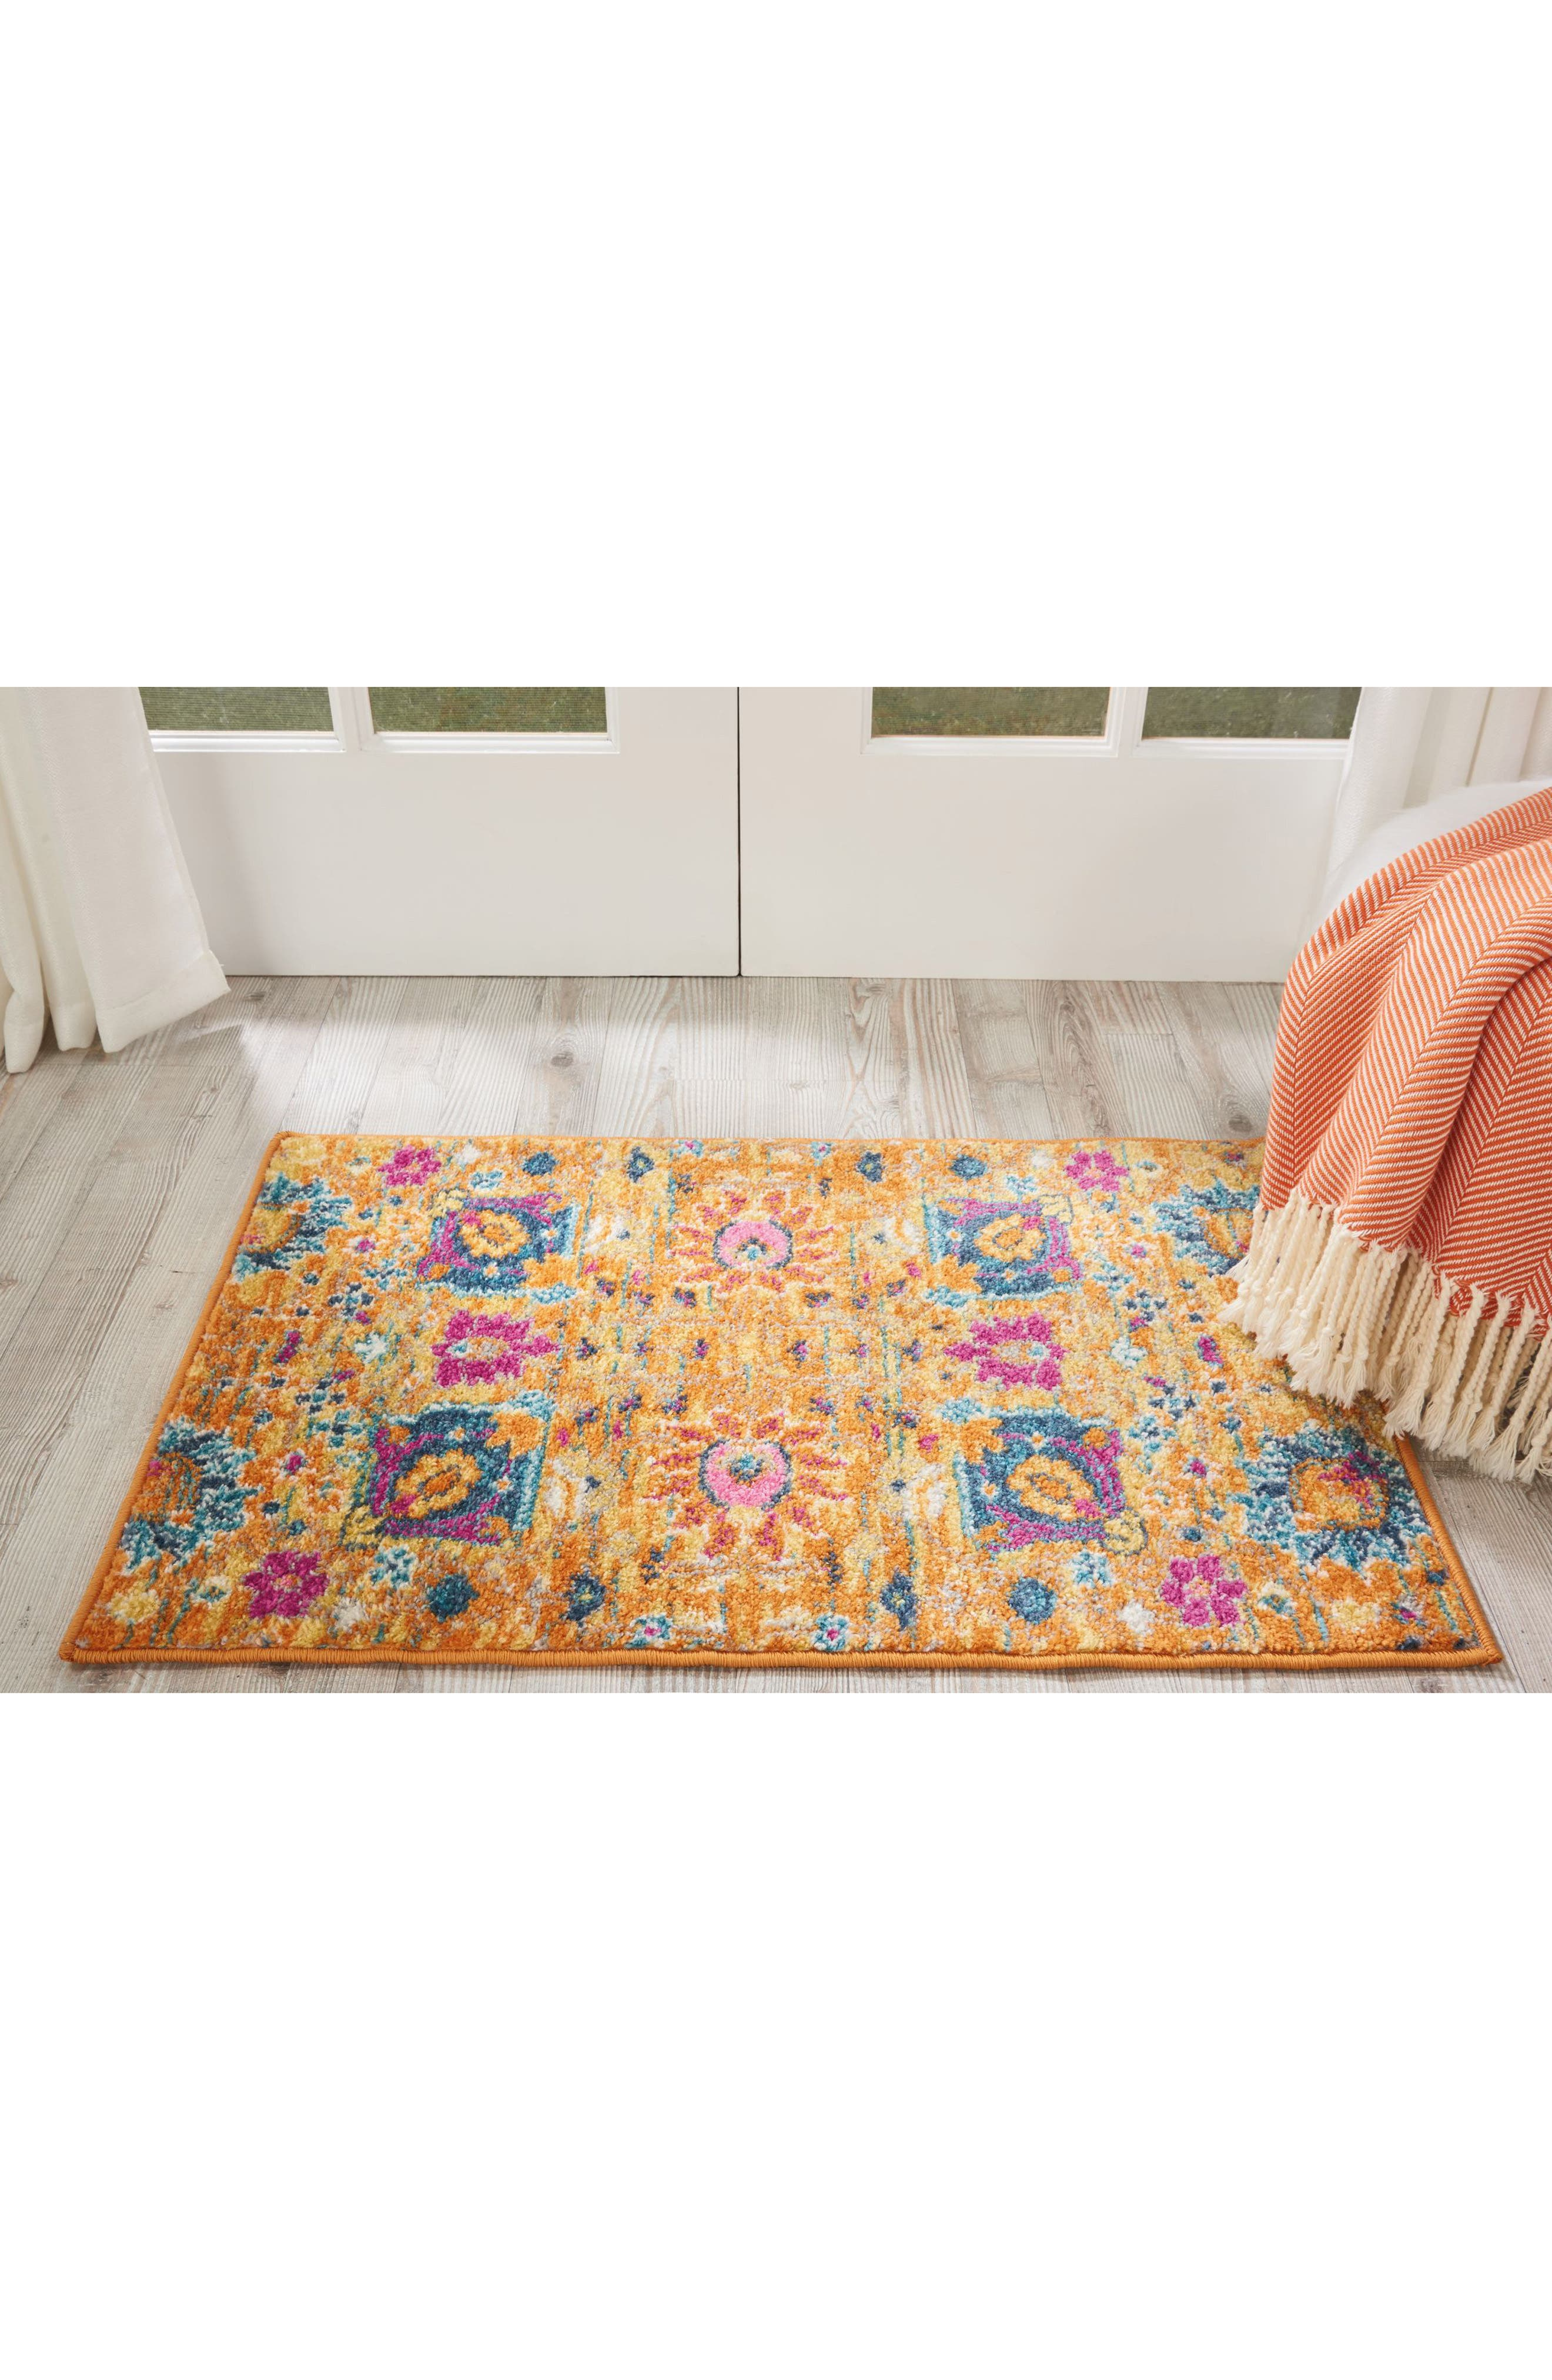 Sunburst Rug,                             Alternate thumbnail 8, color,                             800